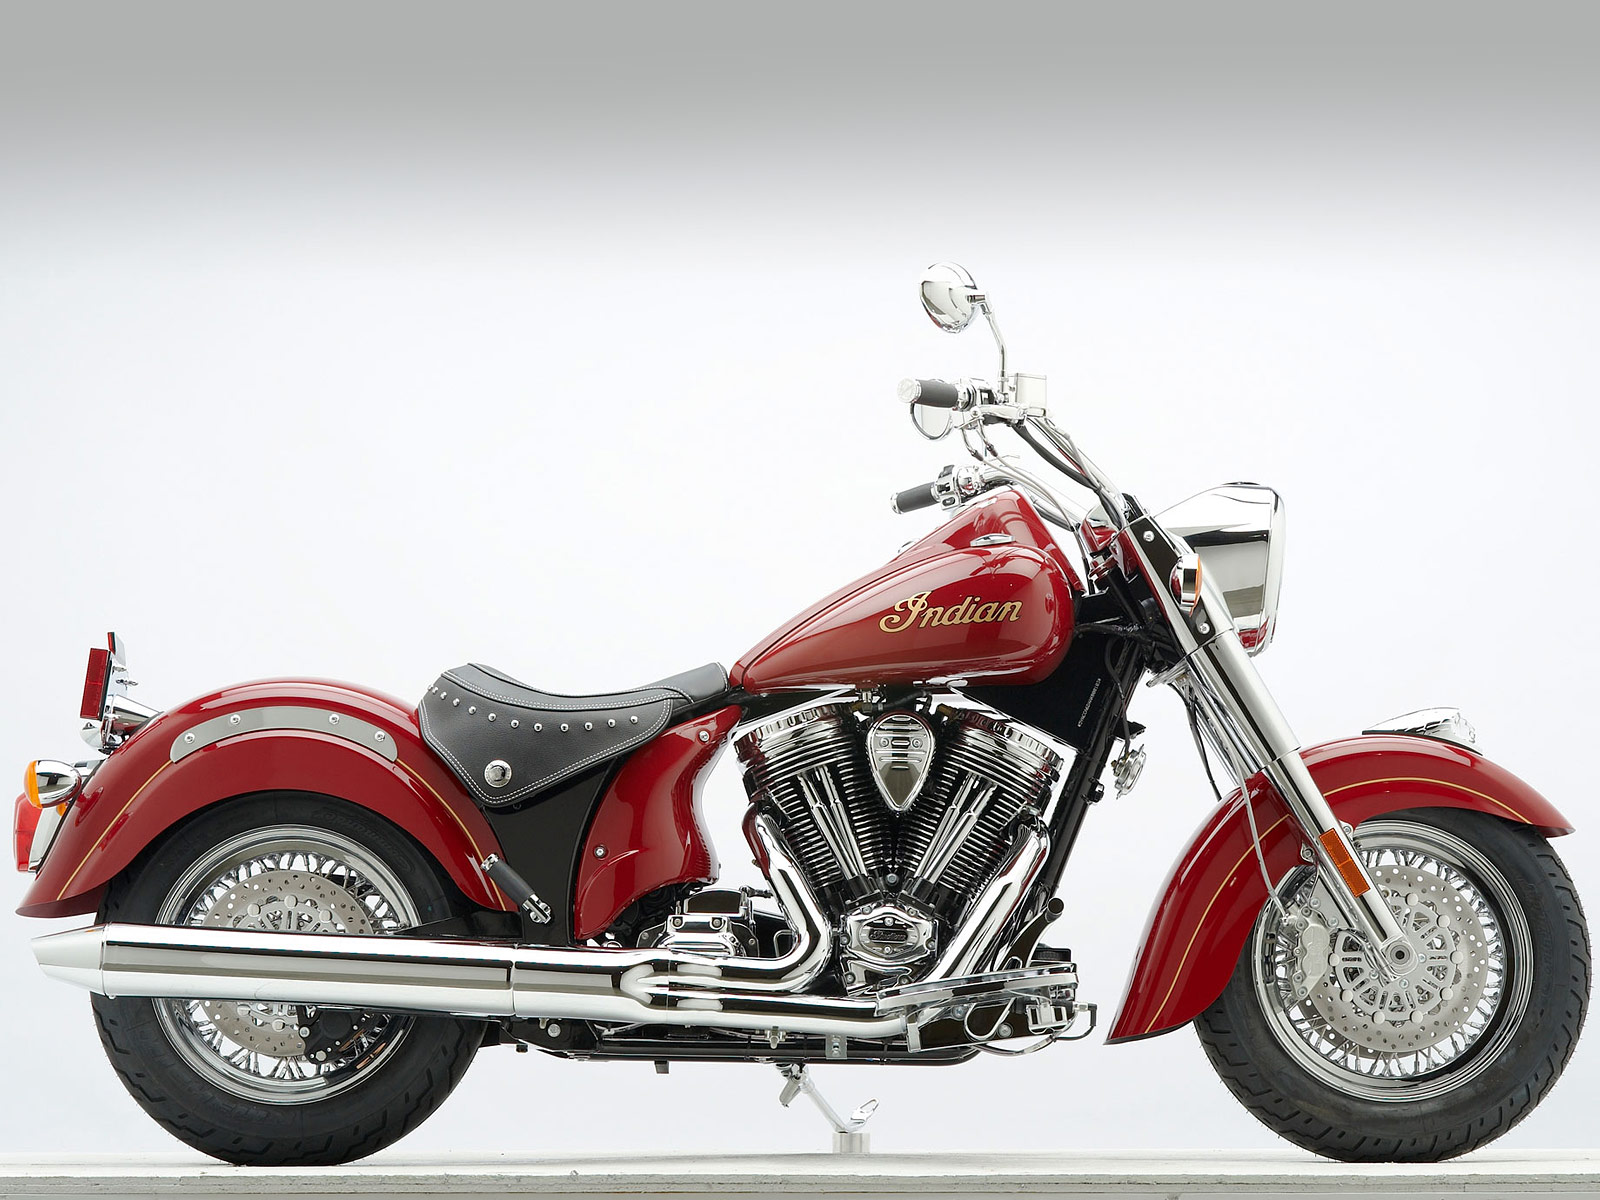 1600x1200 - Indian Motorcycle Desktop 28